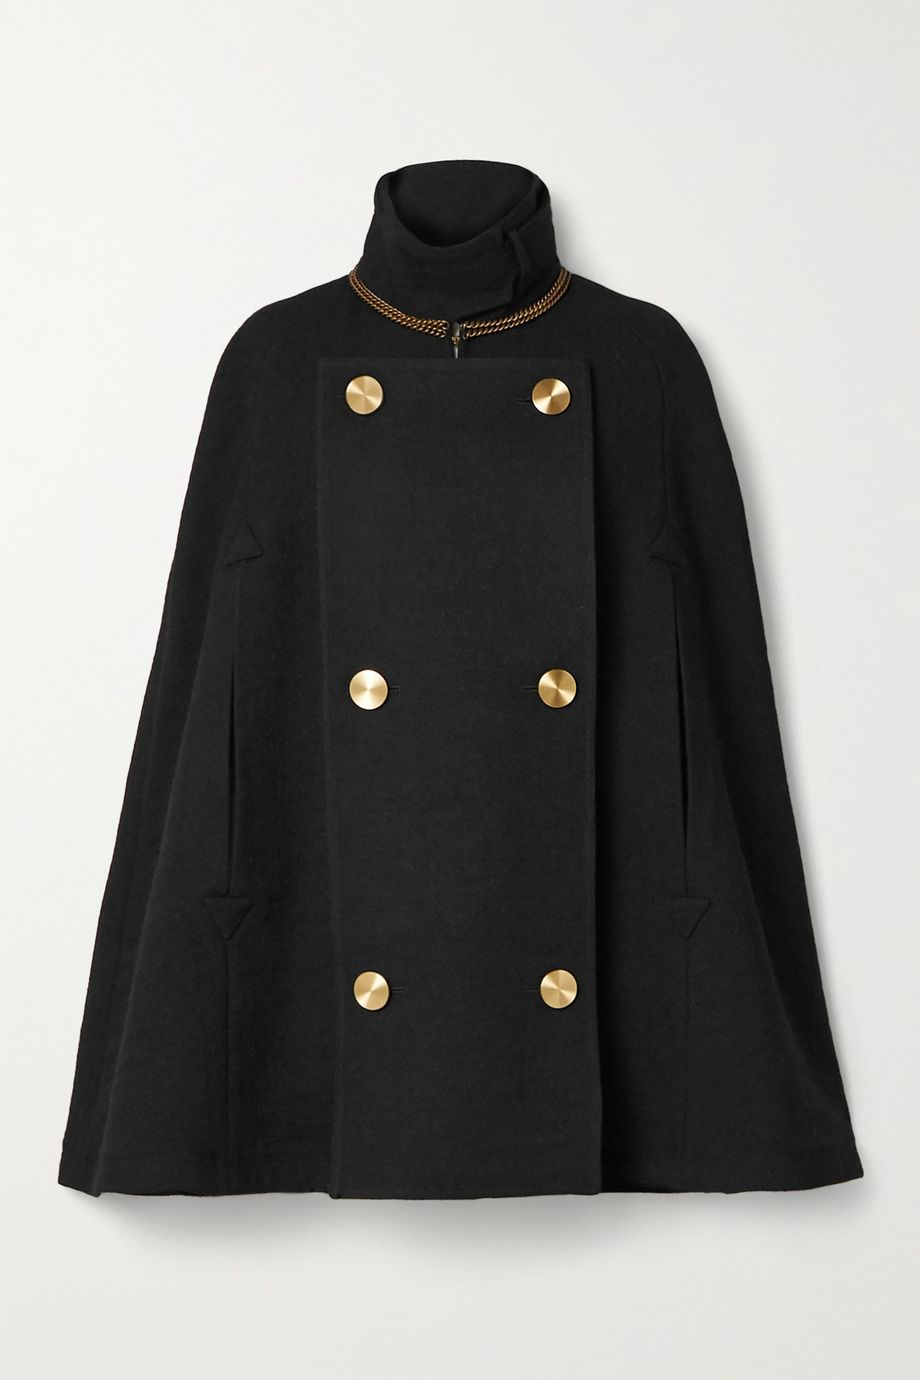 Loewe Chain-embellished double-breasted wool cape